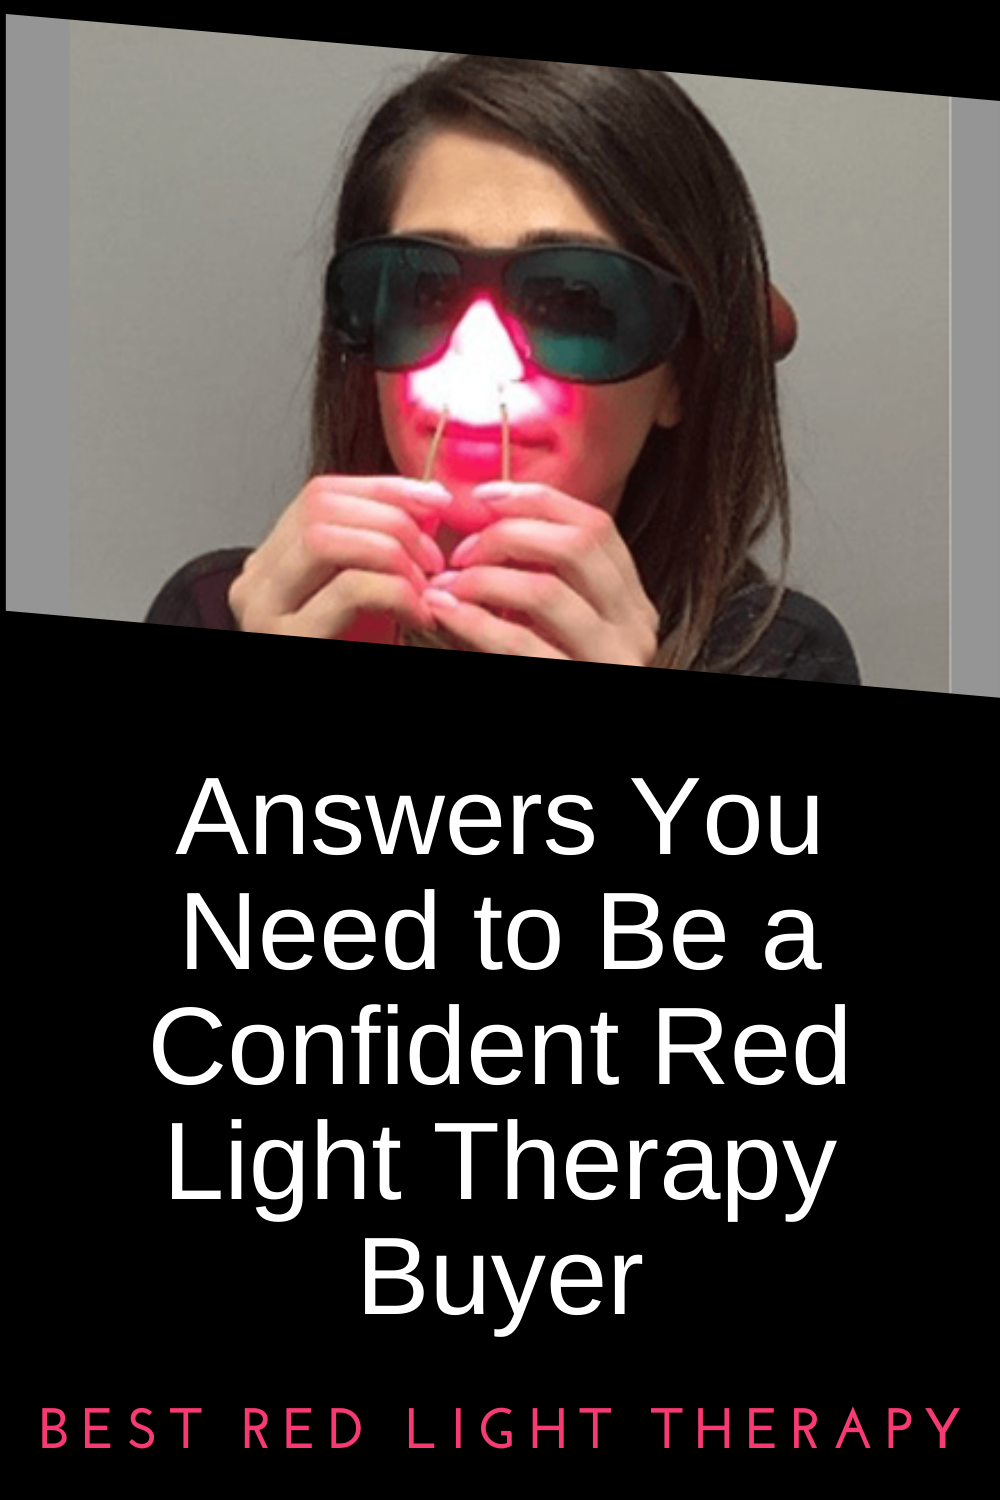 Answers You Need to be a Confident Red Light Therapy Buyer